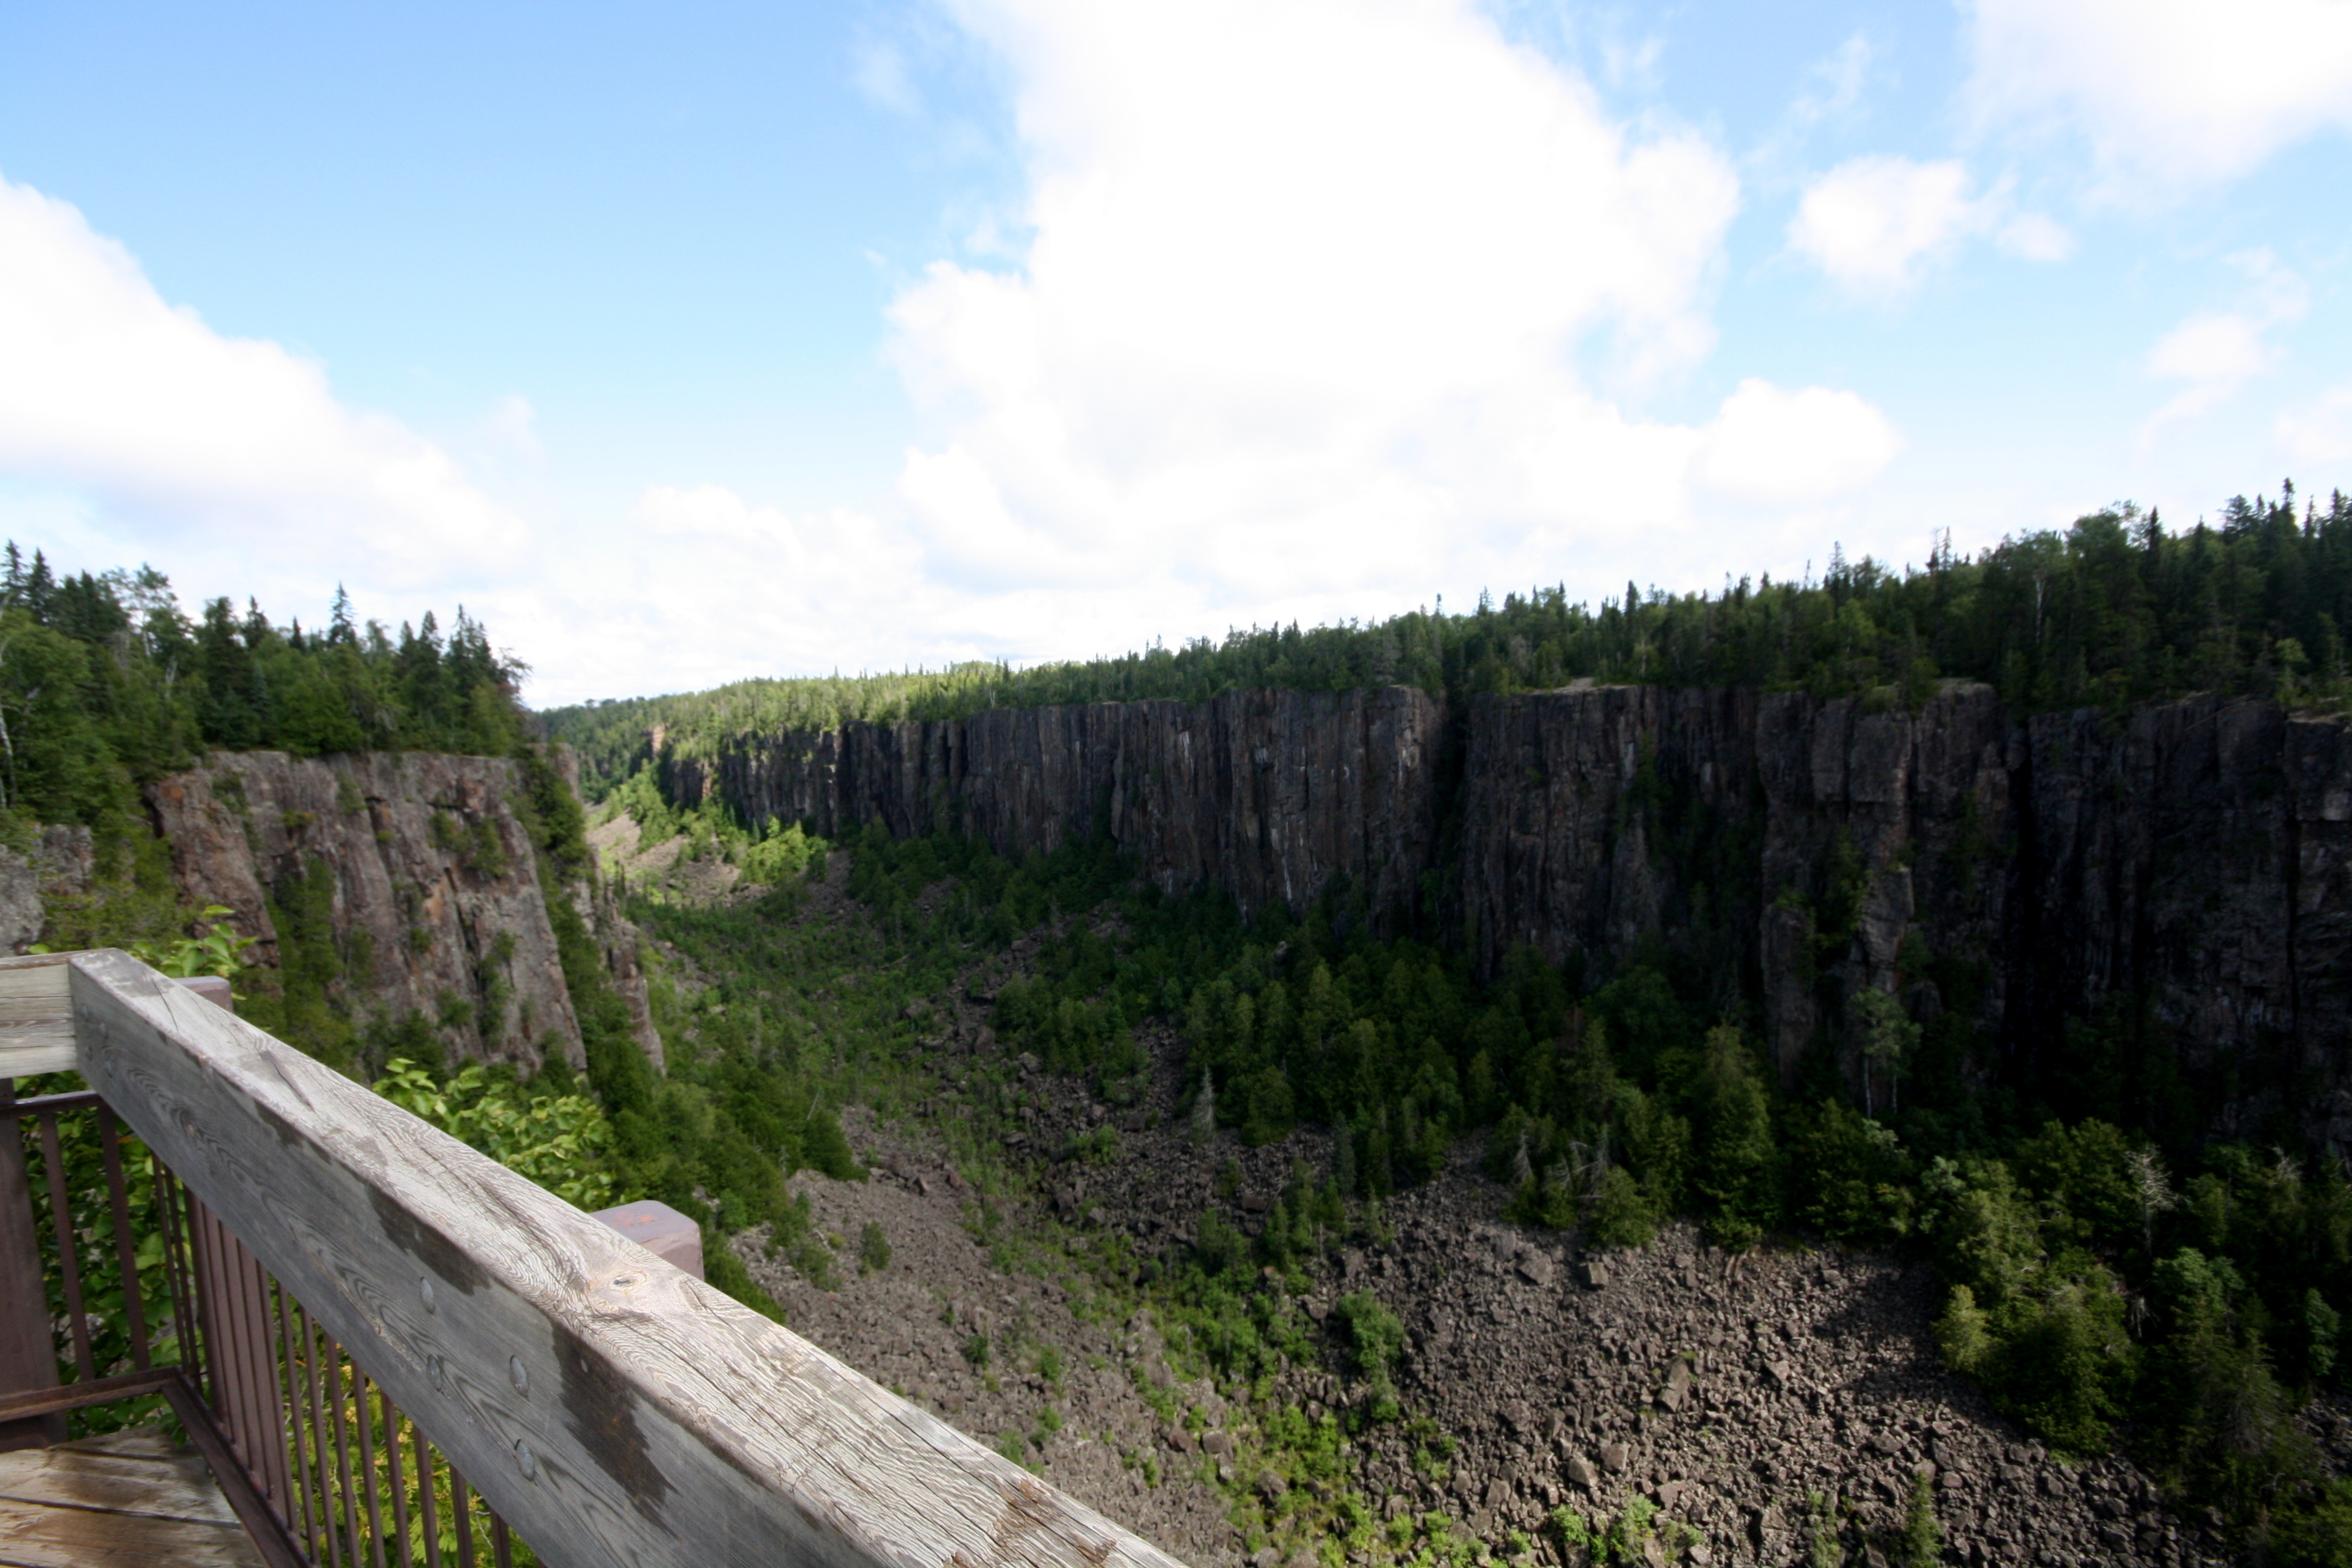 Ouimet Canyon is a truly fantastic spot near Thunder Bay that doesn't get nearly enough attention. JIM BYERS PHOTO